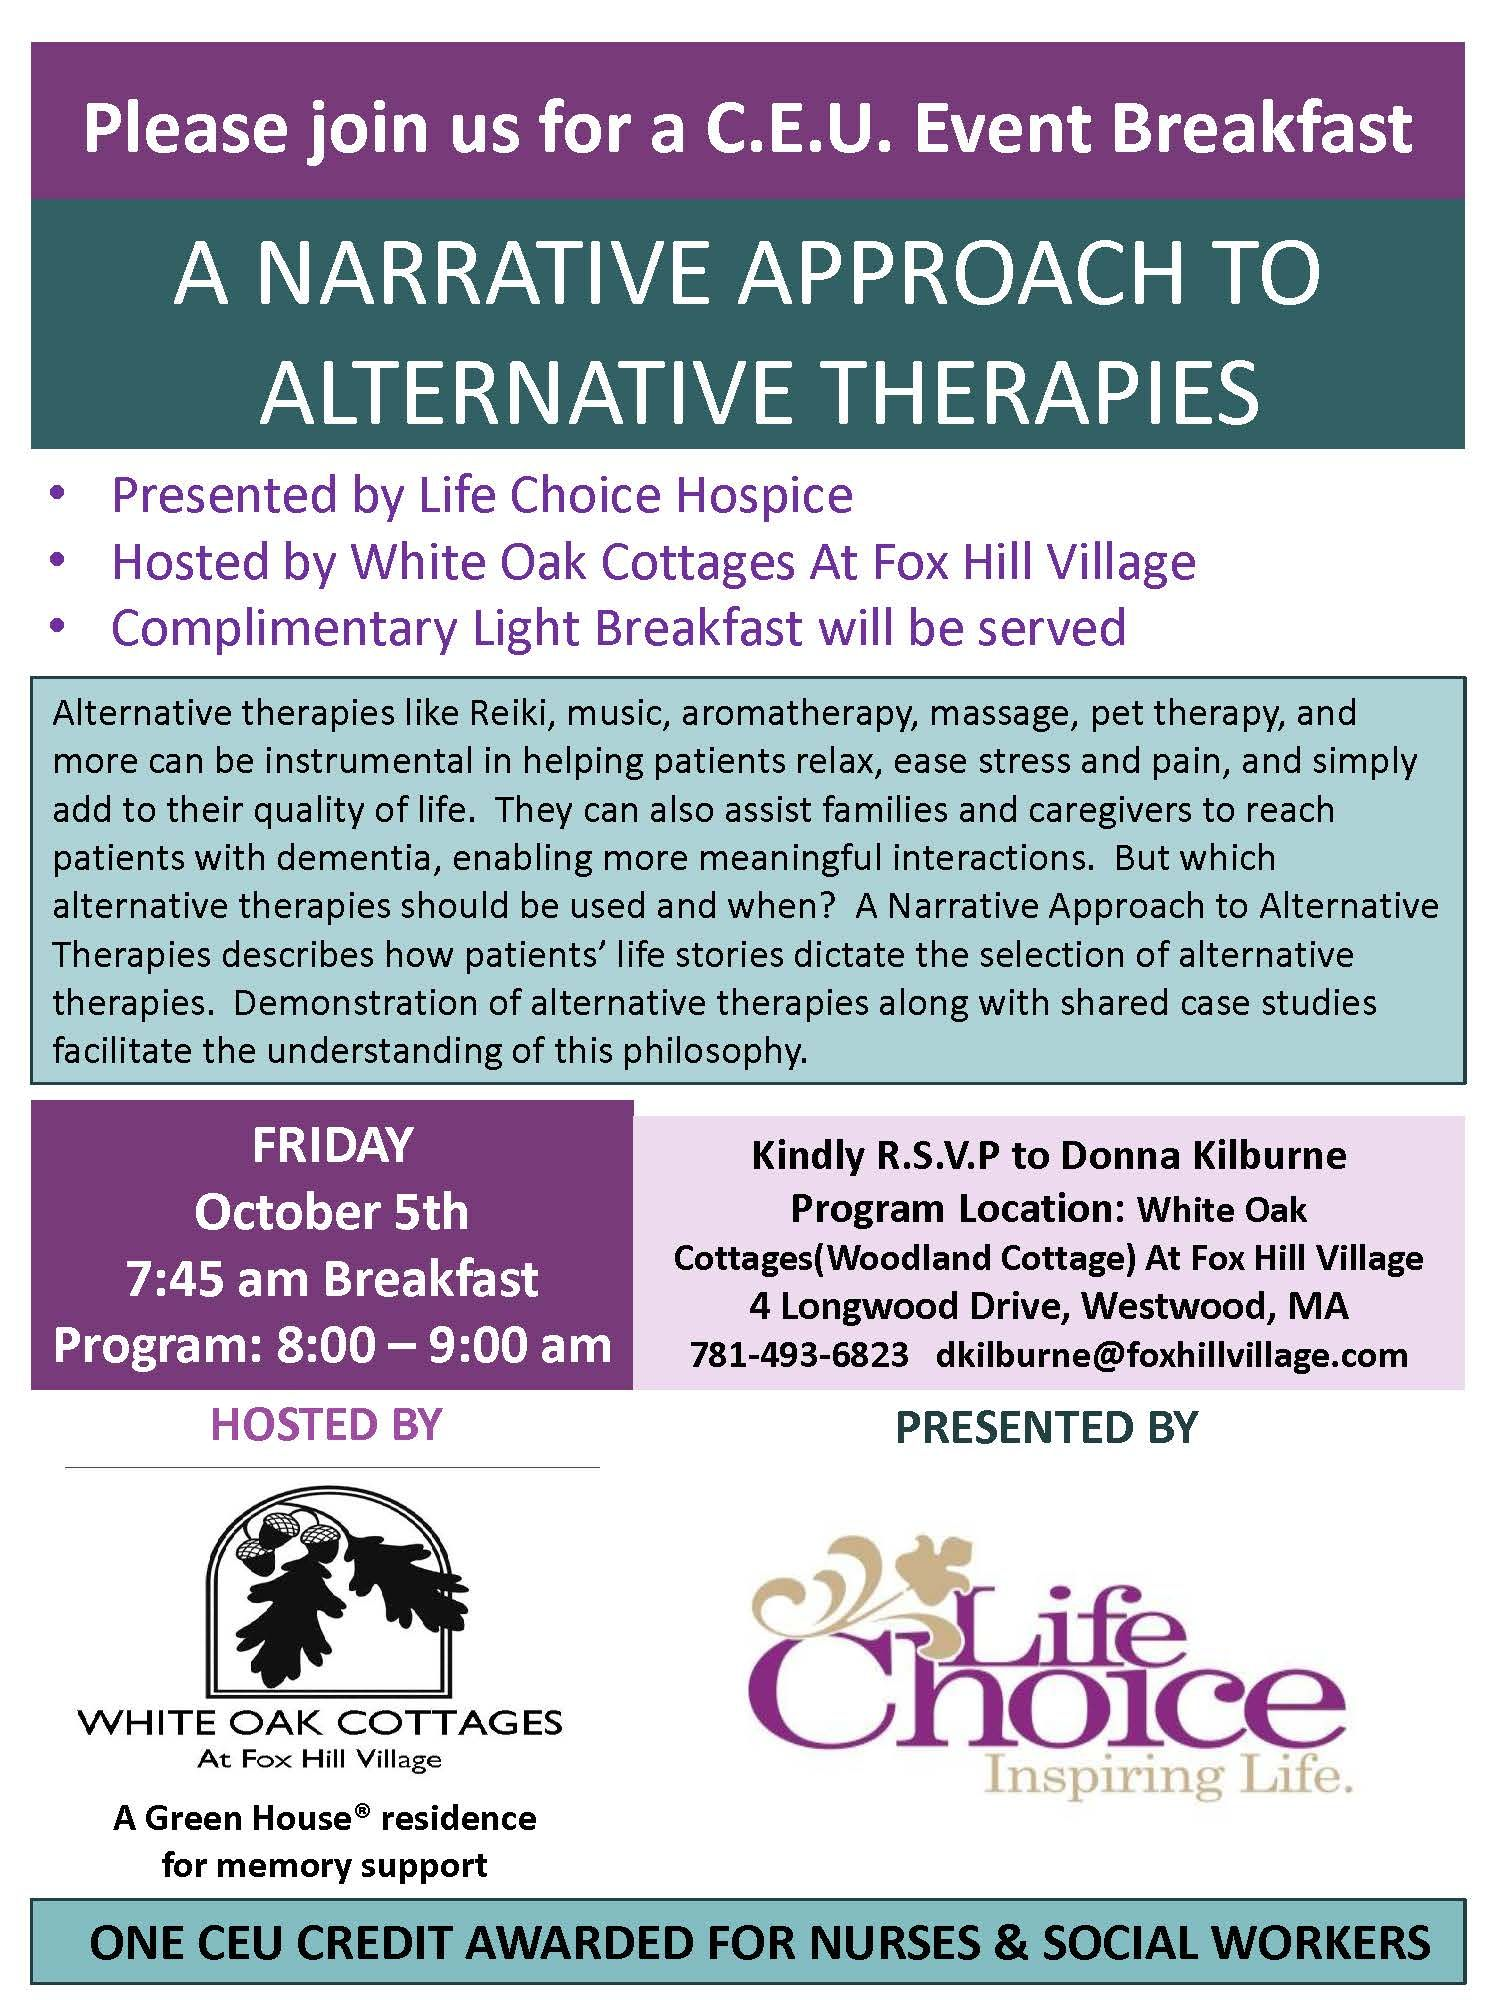 A Narrative Approach To Alternative Therapies